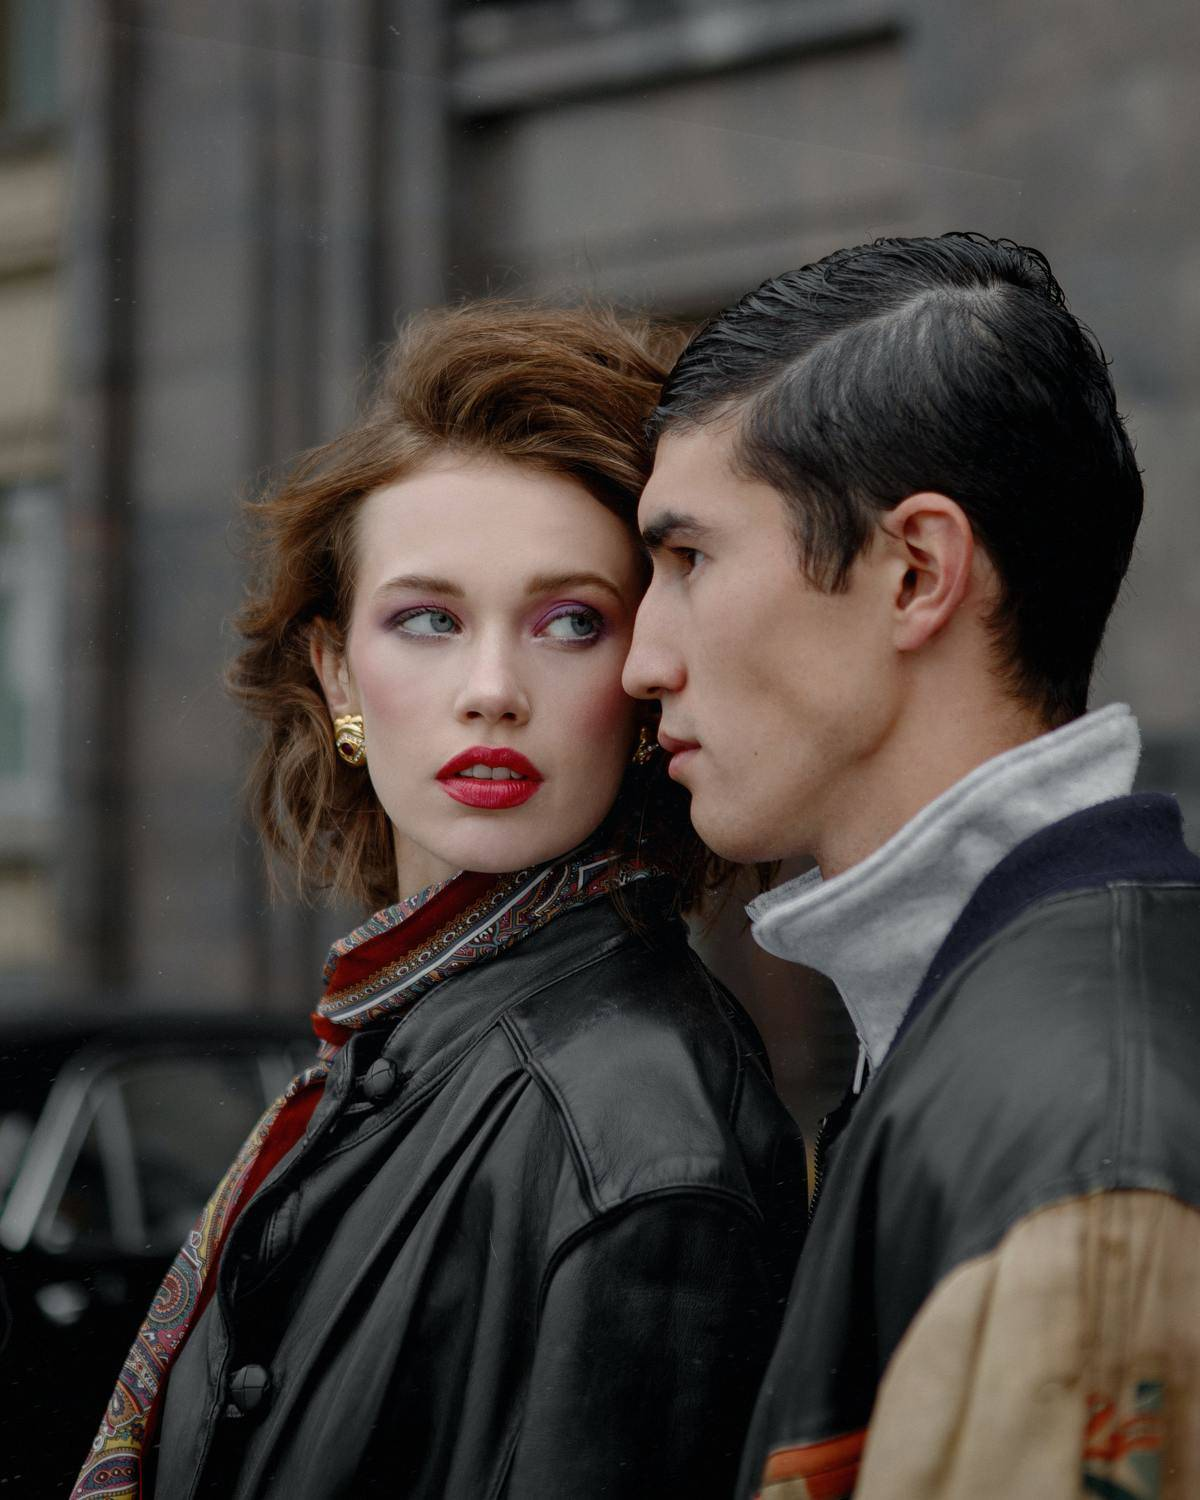 woman looking back at a man who is standing behind her